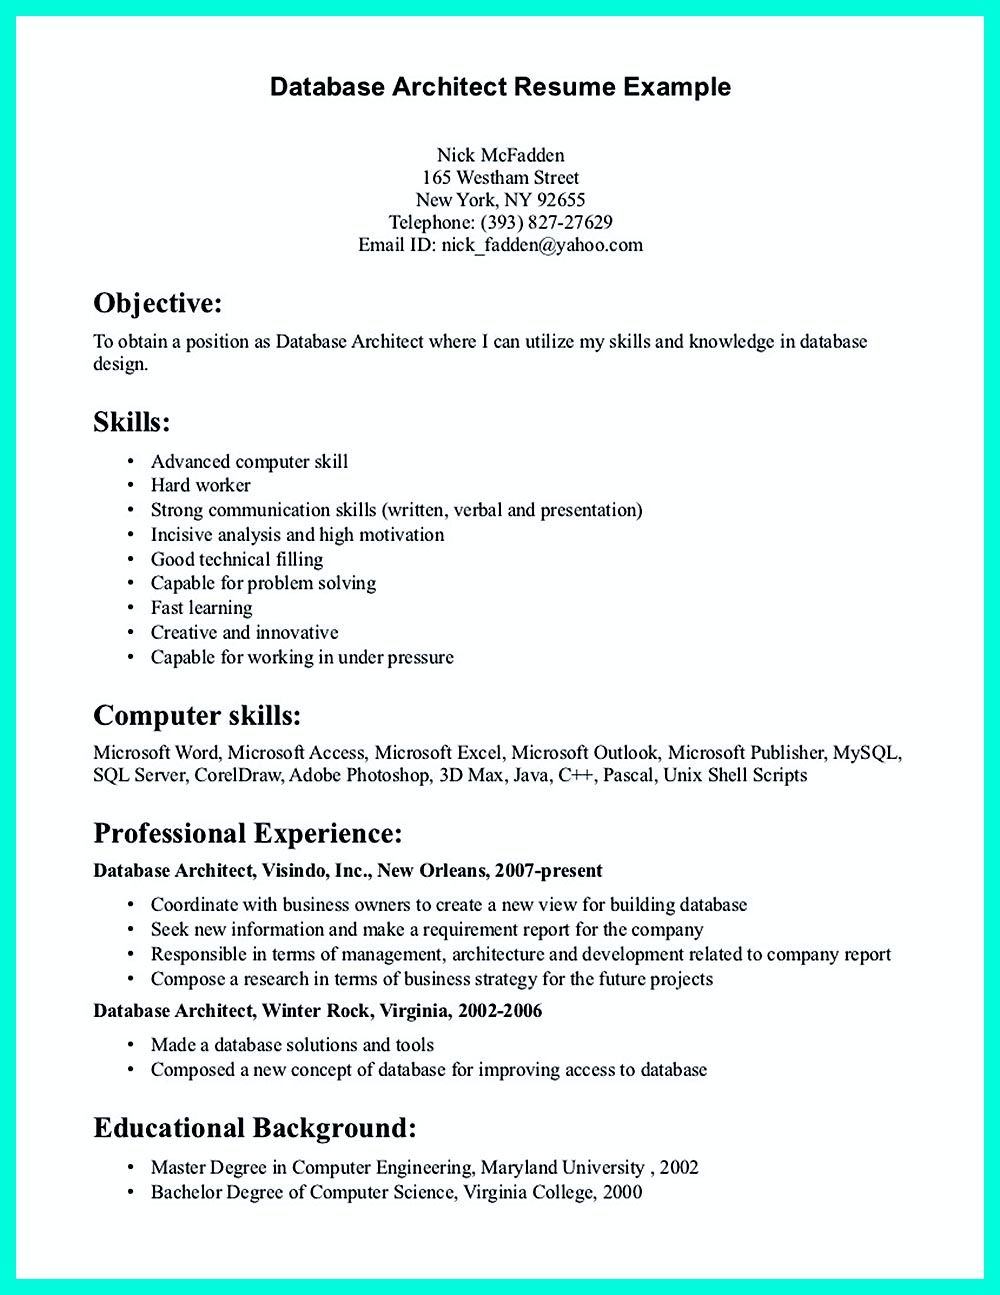 resume How To Write Educational Background In Resume in the data architect resume one must describe professional enterprise sample excellent database template plus skills and